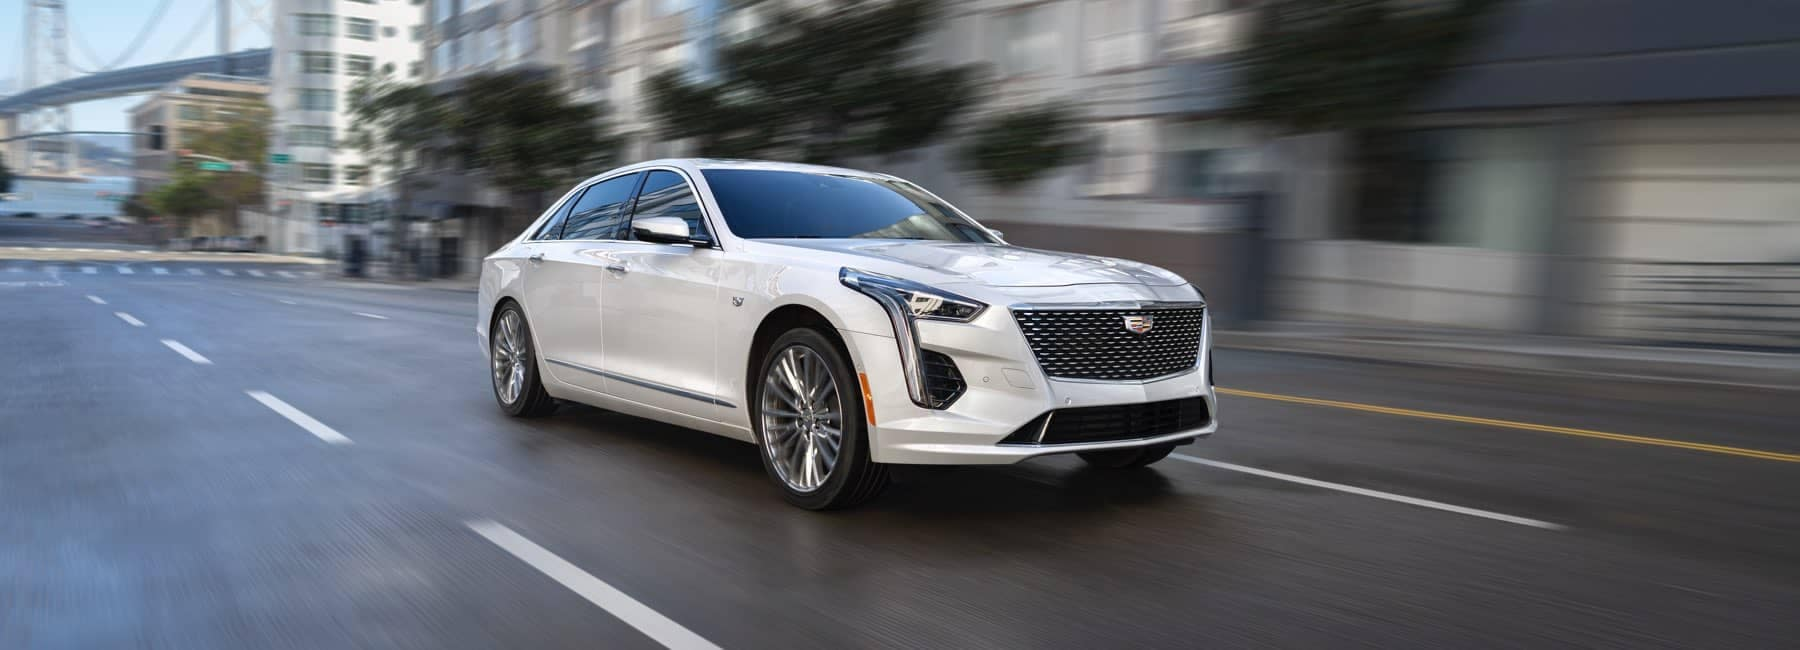 2020 Cadillac CT6 driving down city street